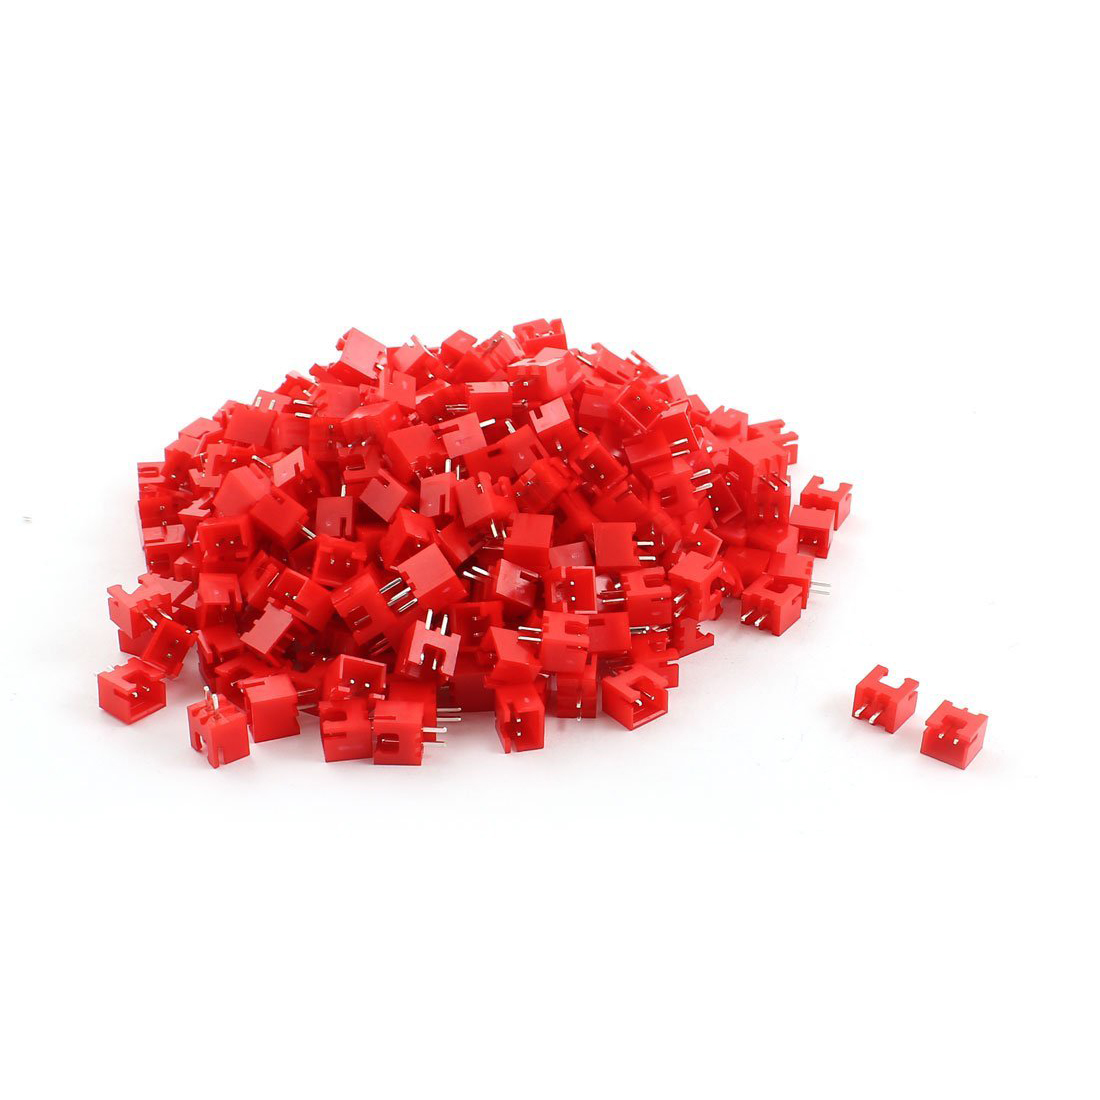 330pcs Red Shell Straight Pin 2.54mm Pitch JST PH Male Connector Plug 2 0mm pitch ph connector plug socket plastic shell wire to board pcb weld plate 2p3p4p5p6p7p8p9p10p11p12p13p14p15p16p